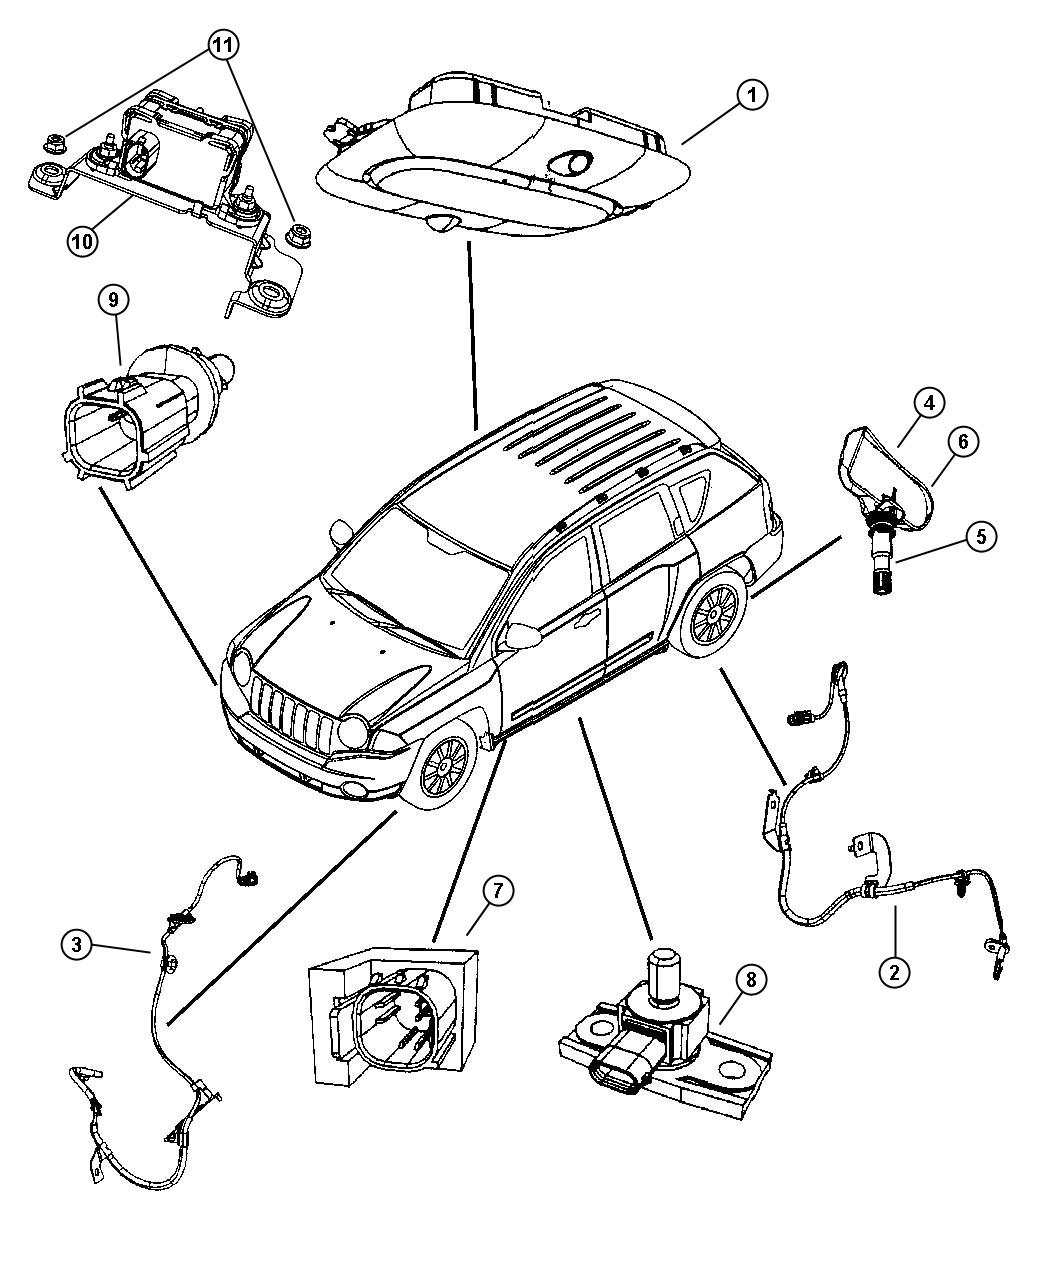 Jeep Compass Sensor Dynamics Used For Lateral